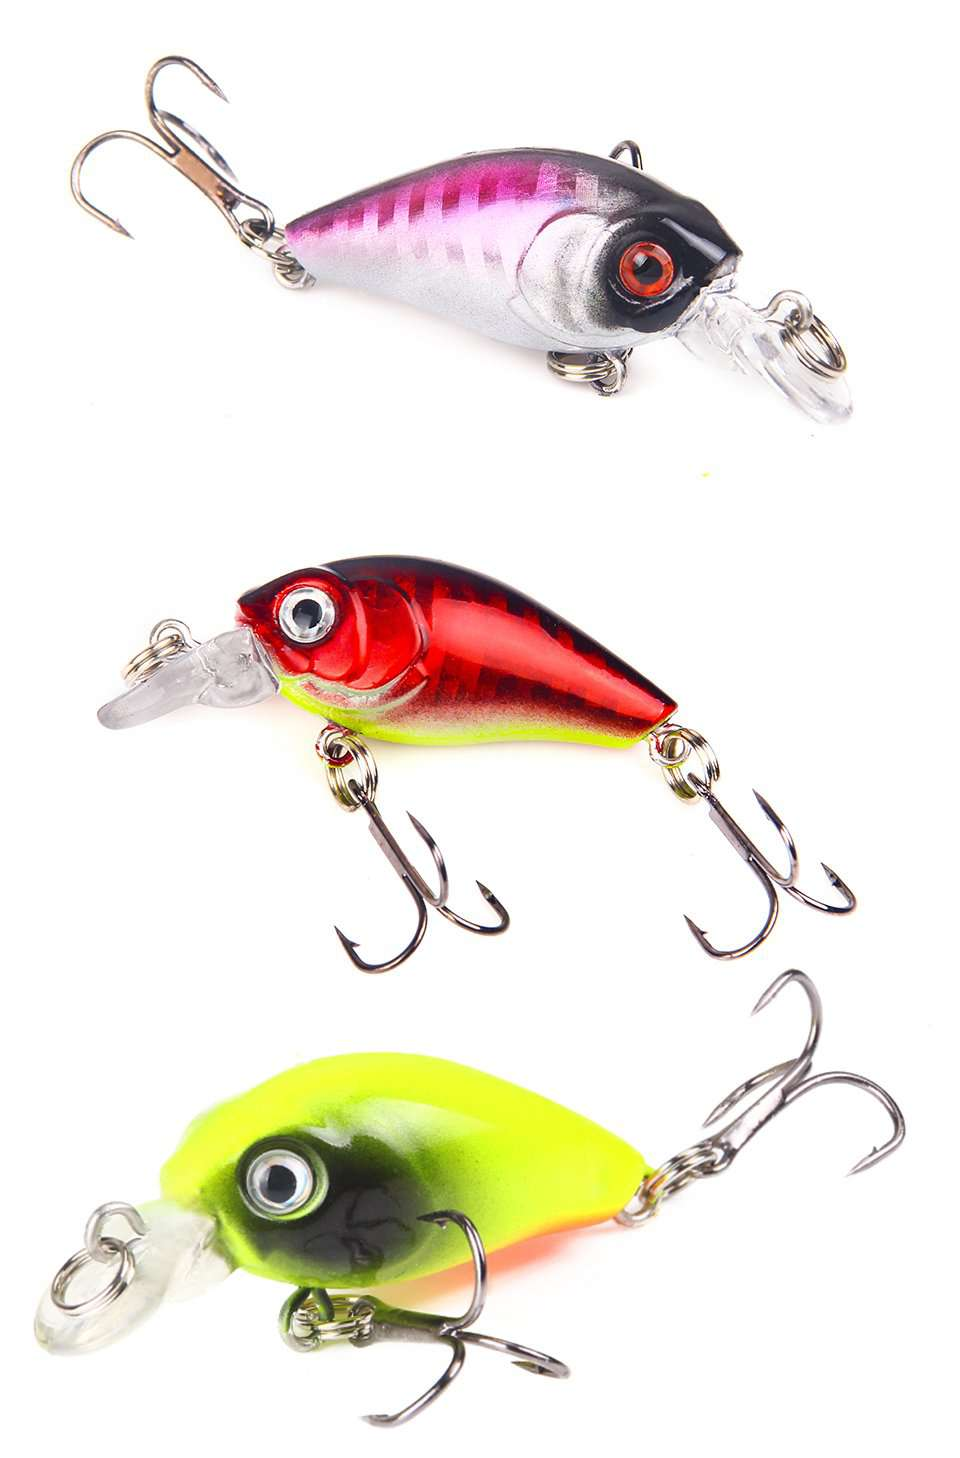 Crankbait, Fishing Lure - Discounts You May Like